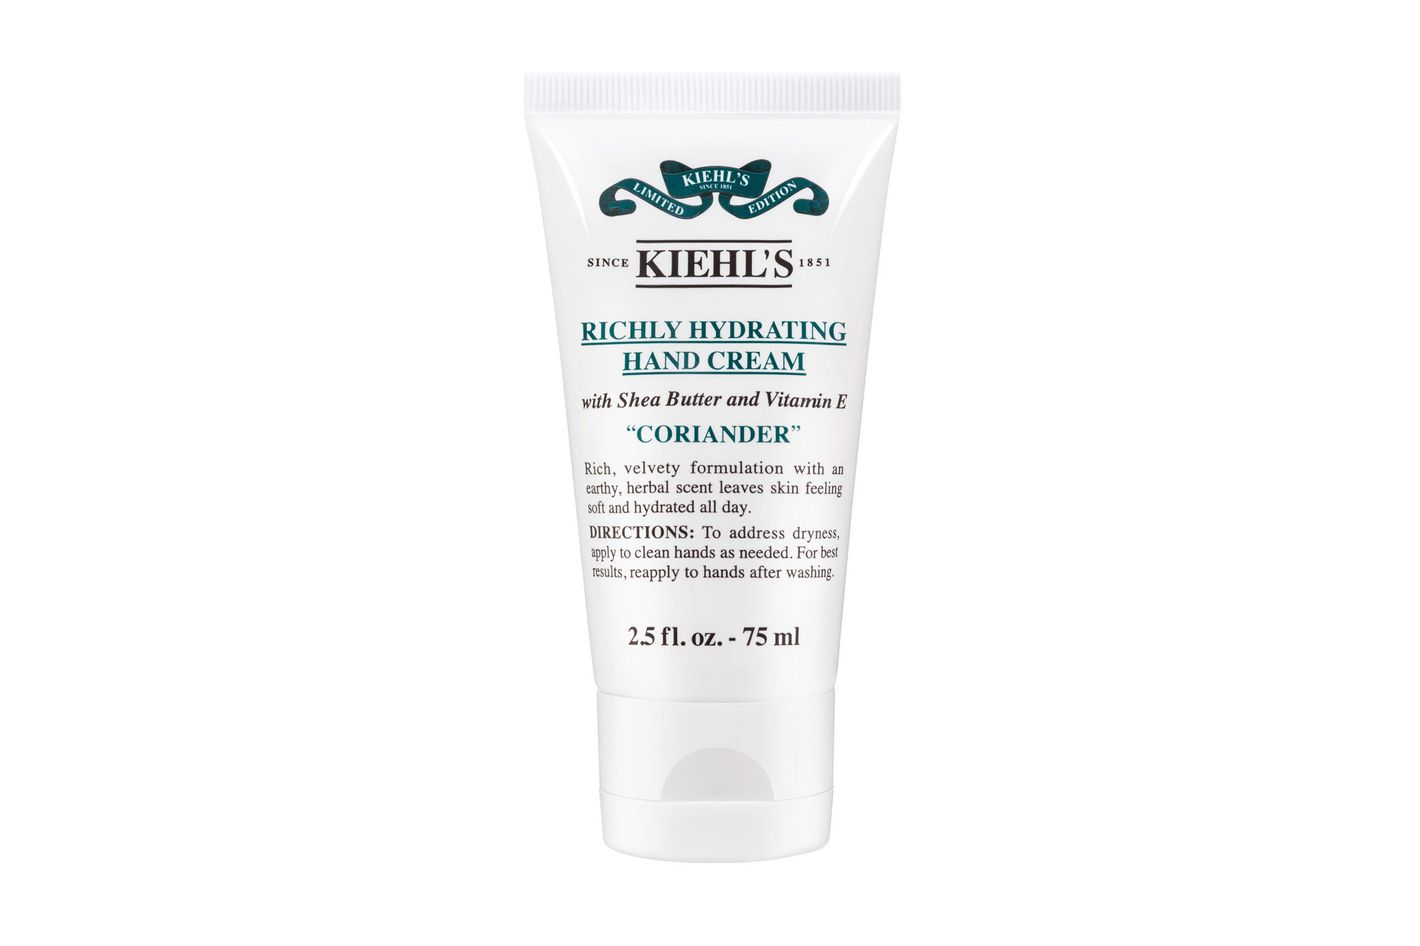 Kiehl's Richly Hydrating Hand Cream in Coriander